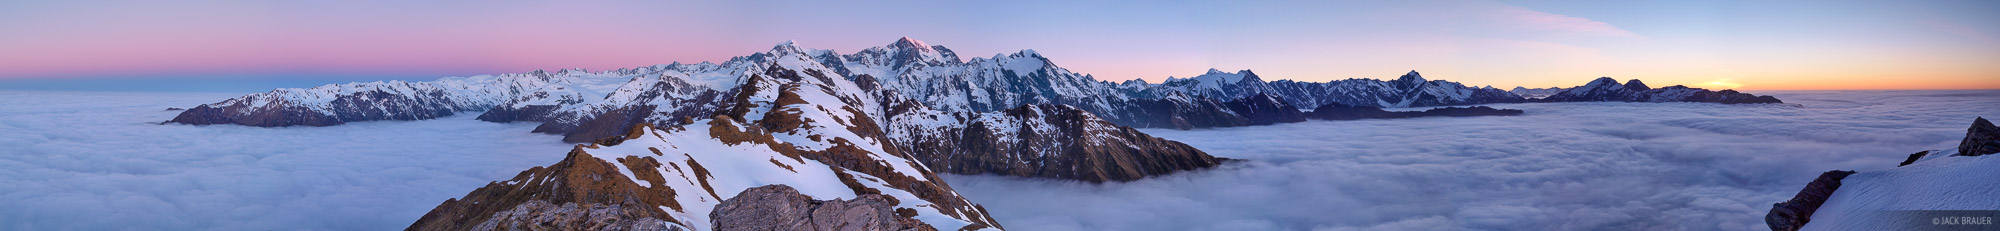 Southern Alps, panorama, Mt. Cook, Tasman Sea, New Zealand